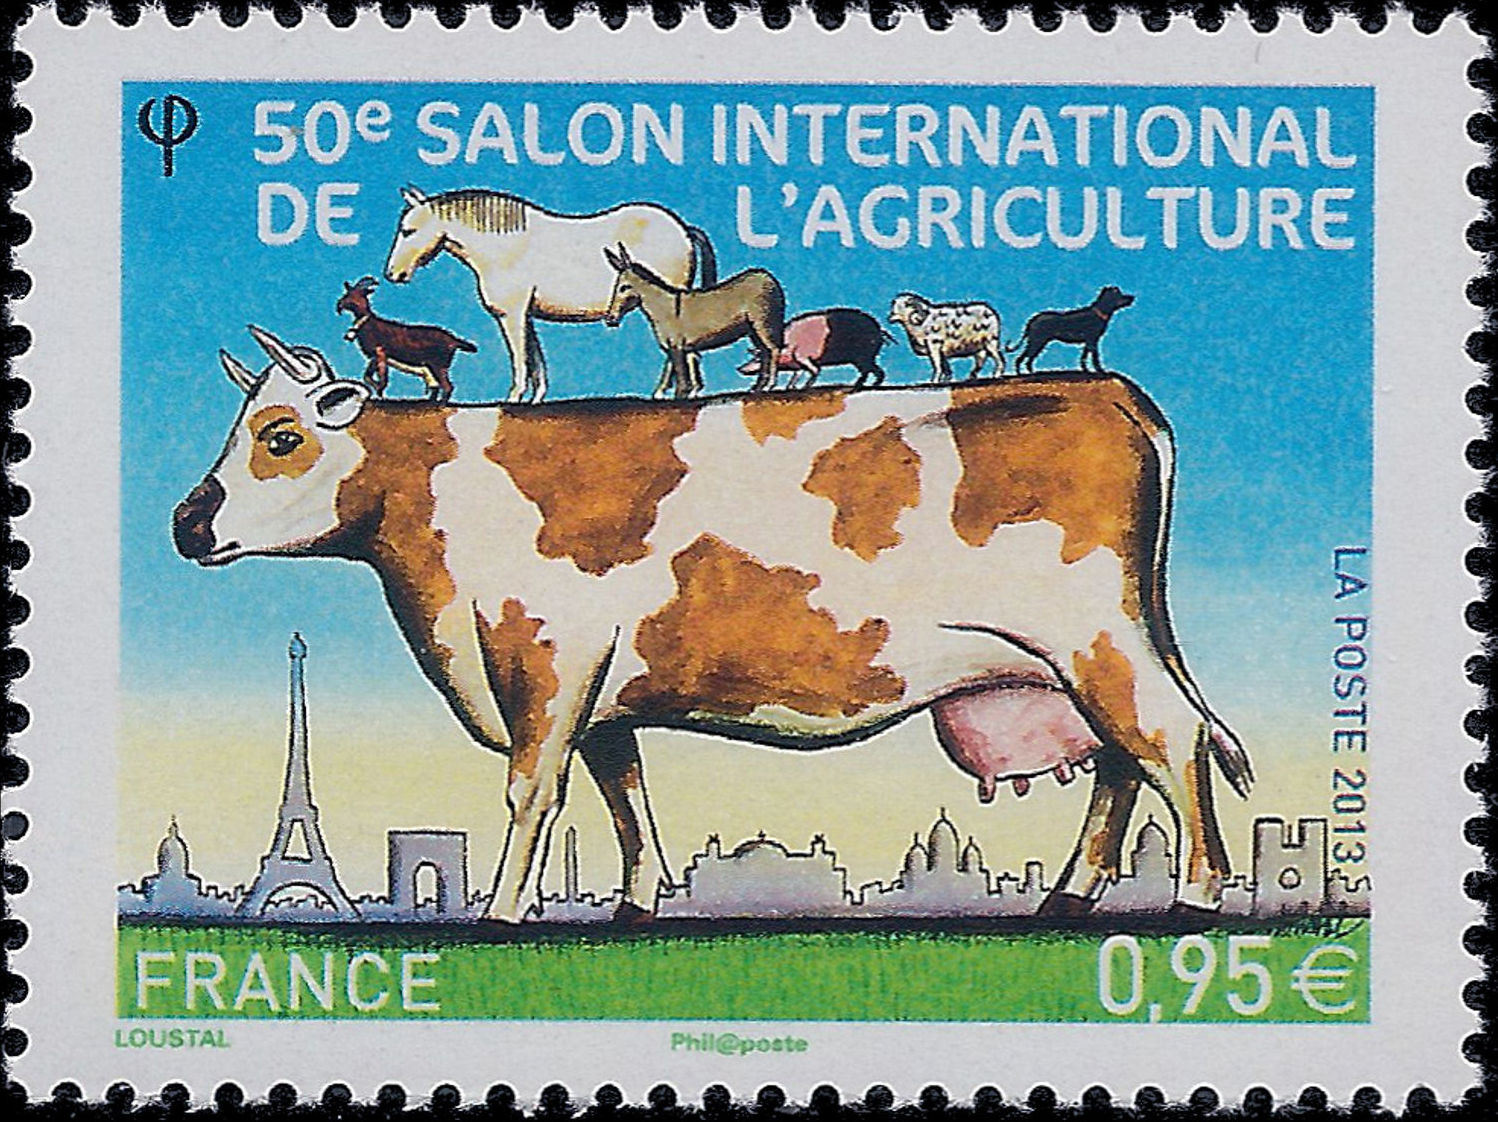 France 2013 50th International Exhibition of Agriculture